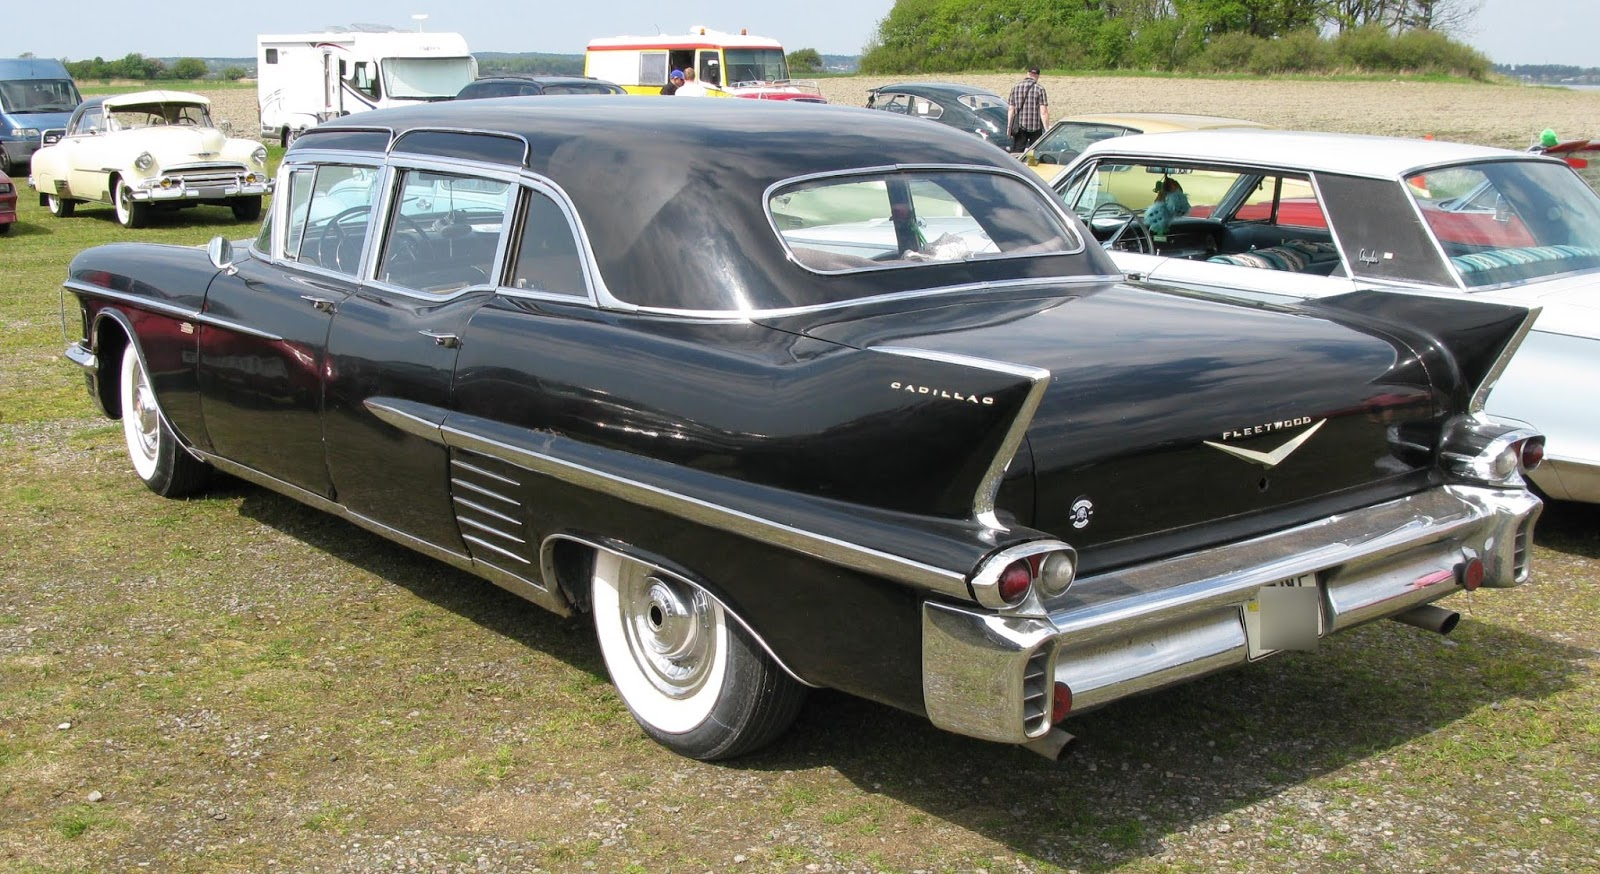 The 1950 based limousine upper body continued through 1958 compare the passenger compartment roof and windows to the 1952 limousine shown two images above